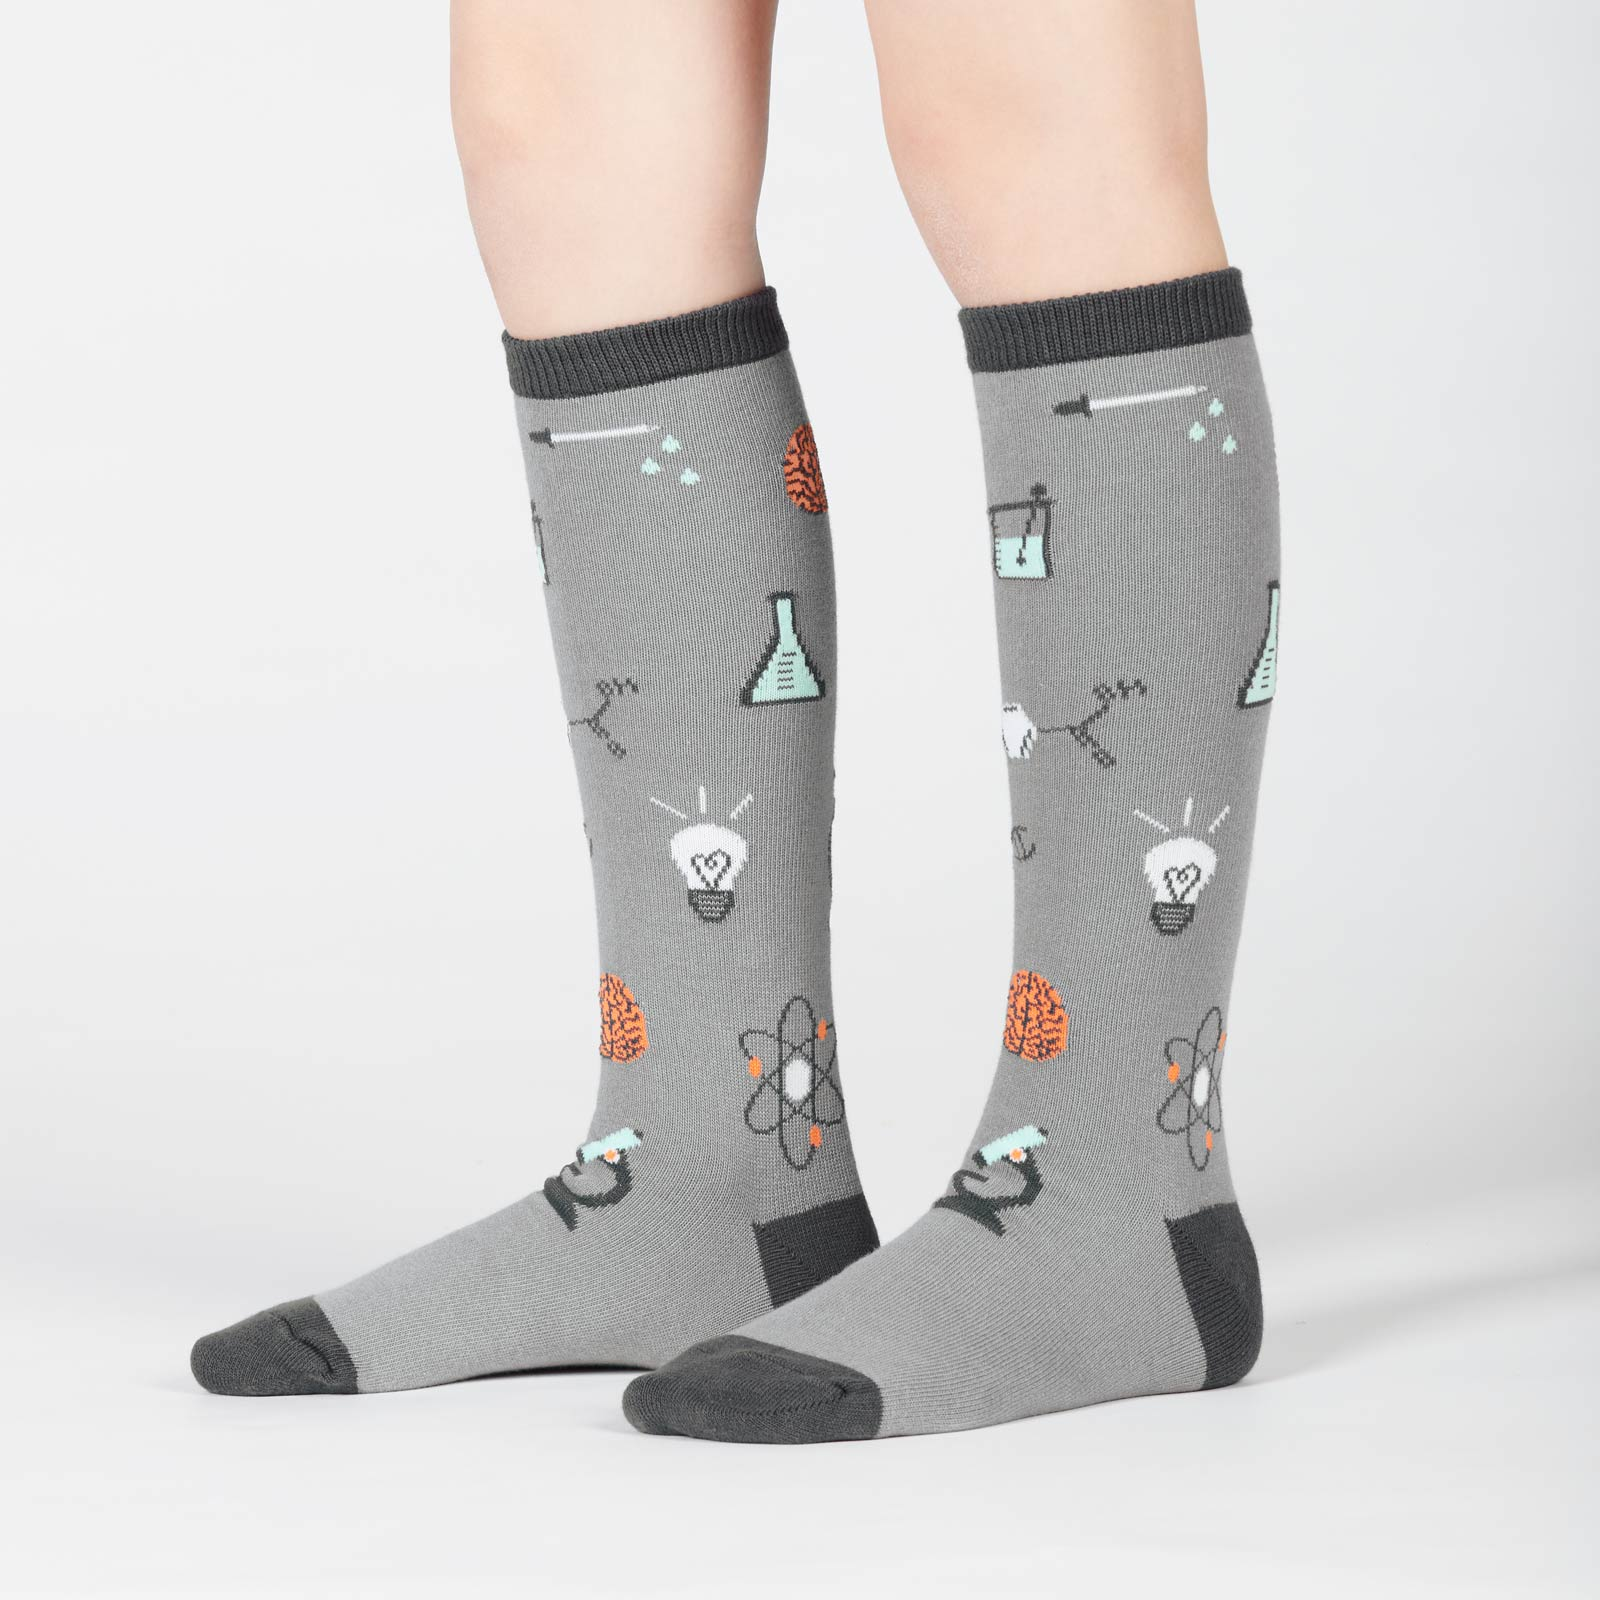 Kid's Science of Socks Knee High